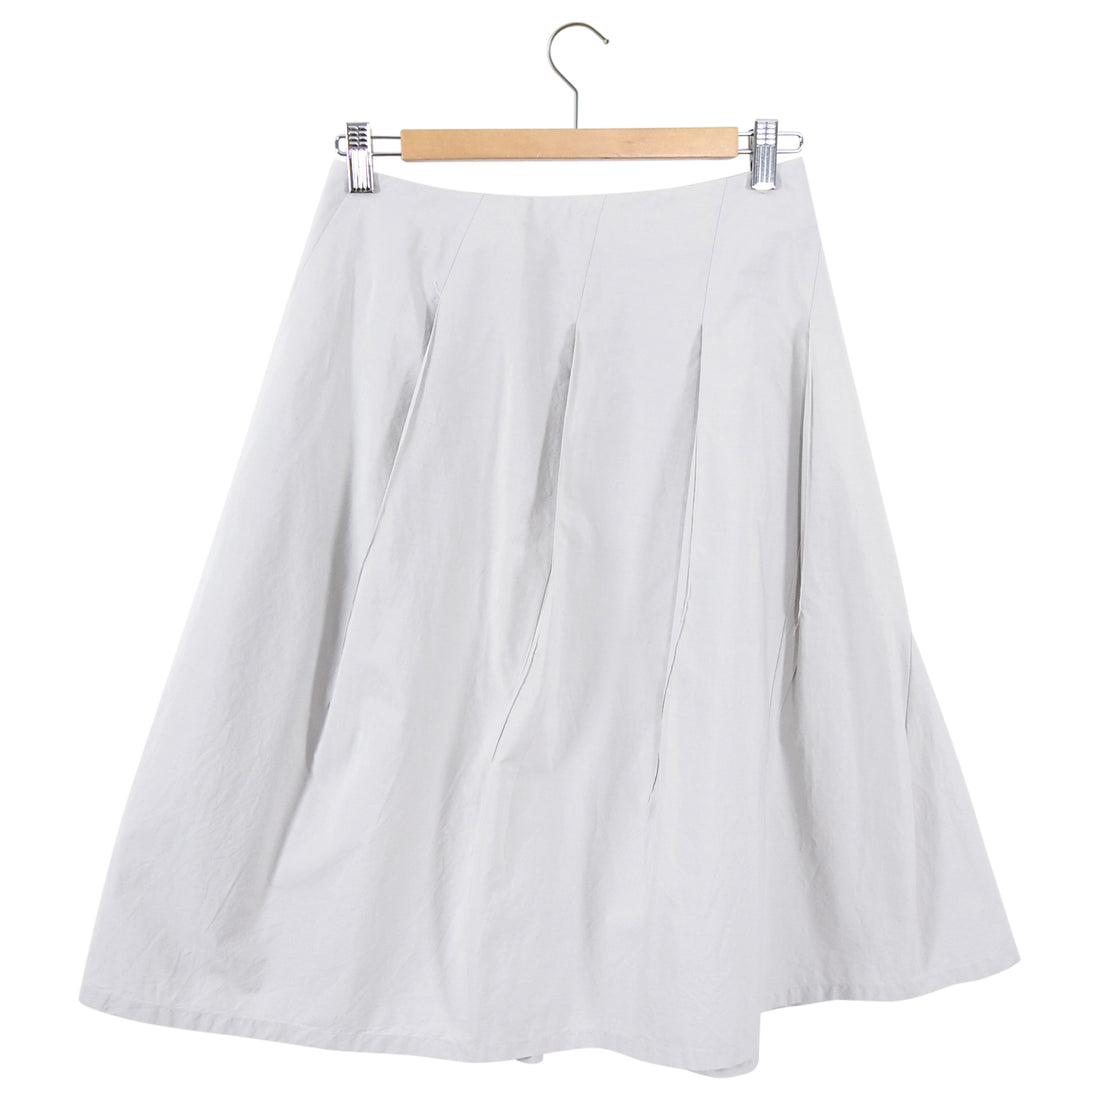 Jil Sander Light Dove Grey Cotton Twist Seam Skirt - FR36 / 4